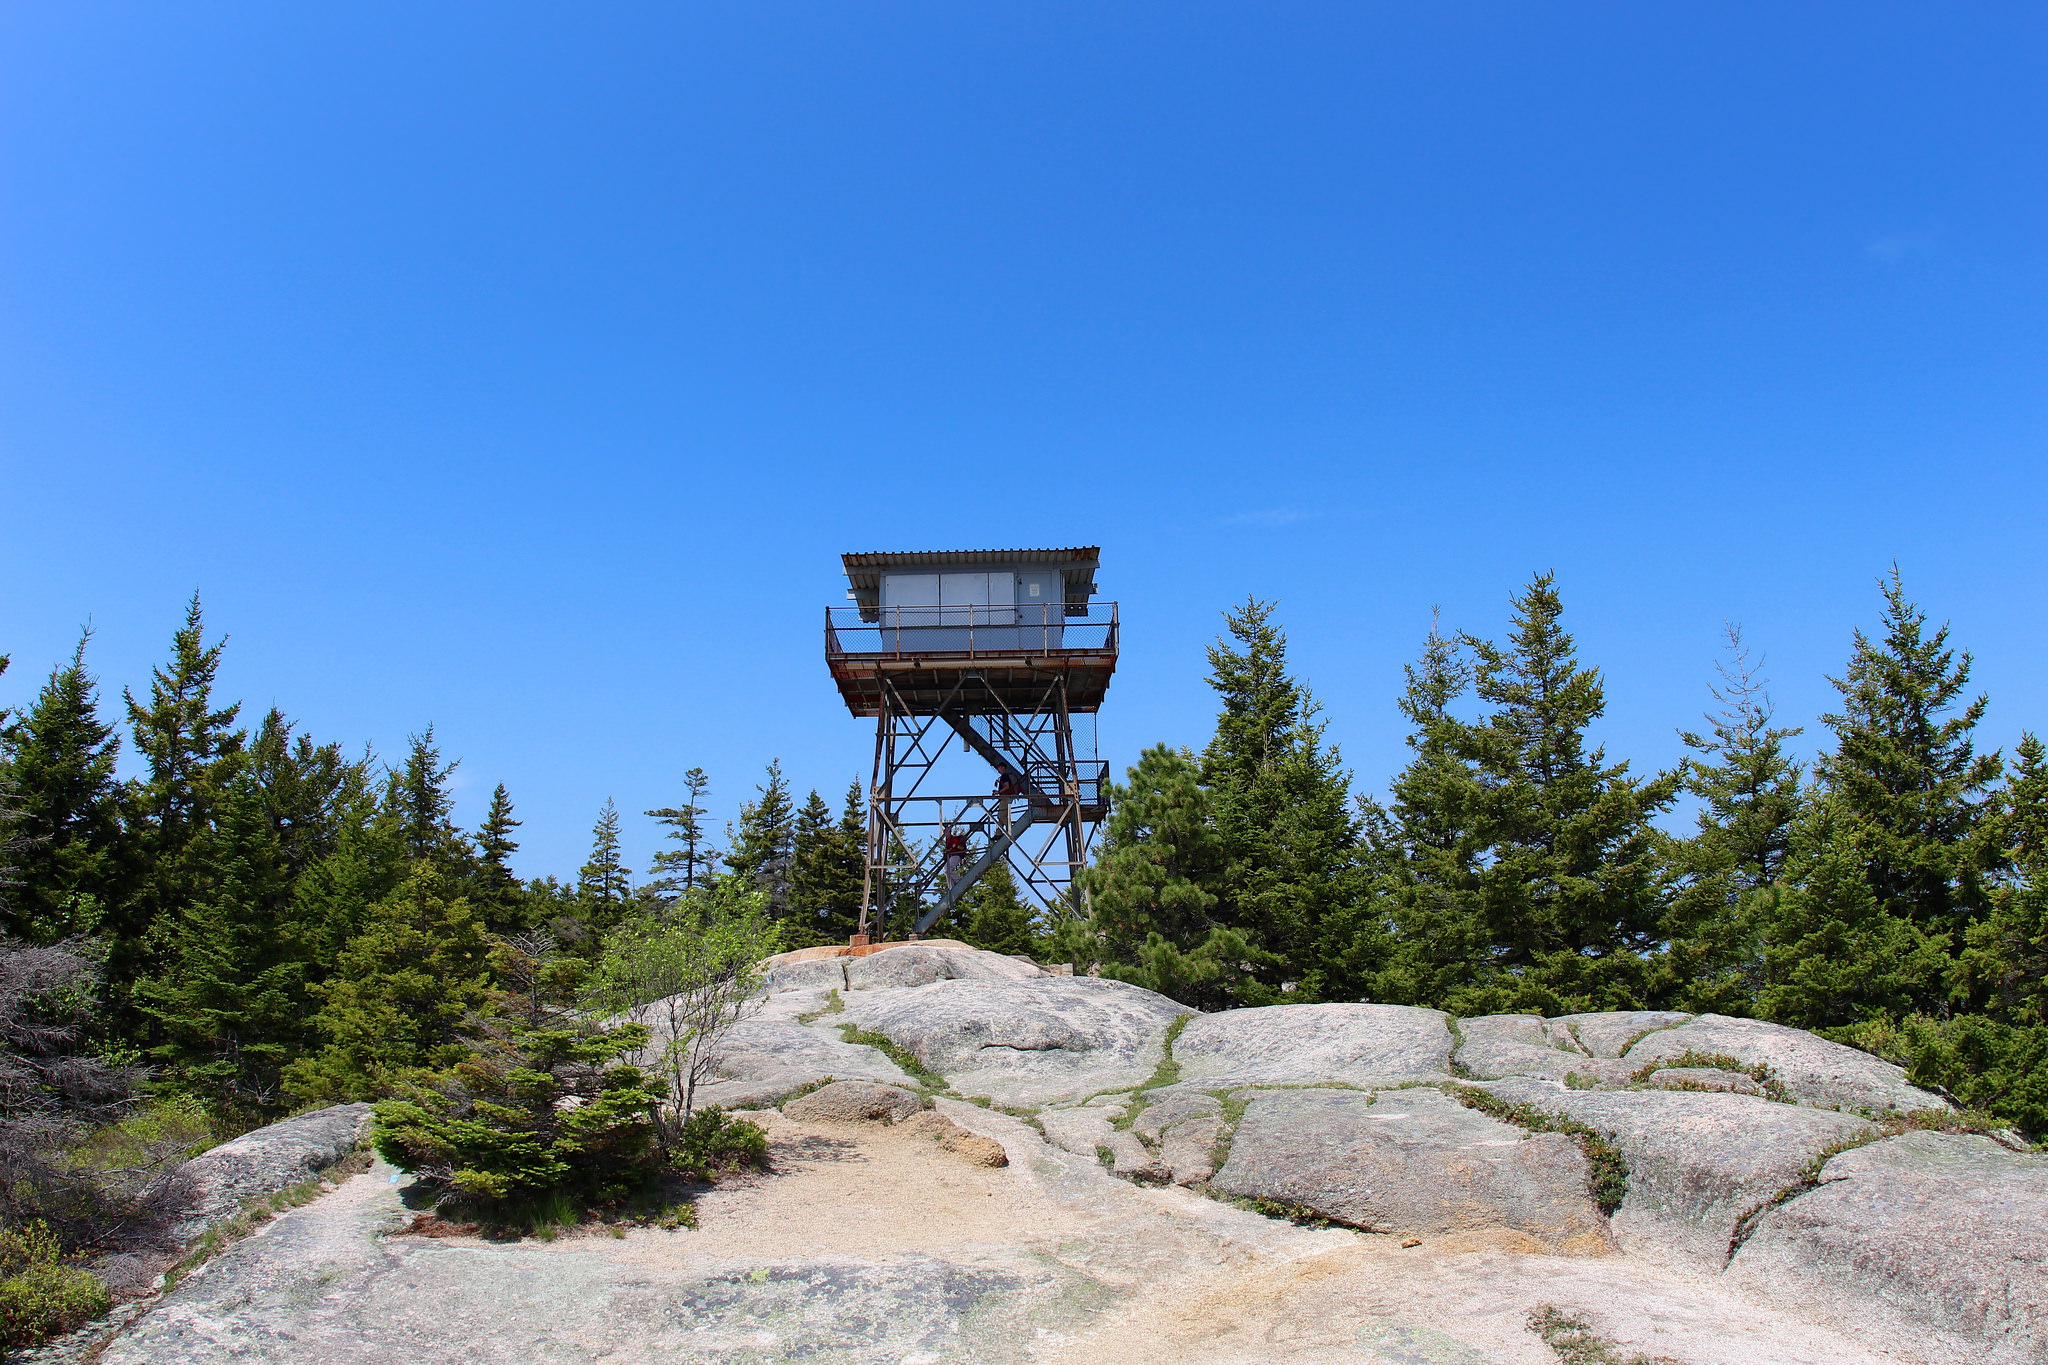 The fire tower that sits on the summit of Beech Mountain, just 3 miles away.